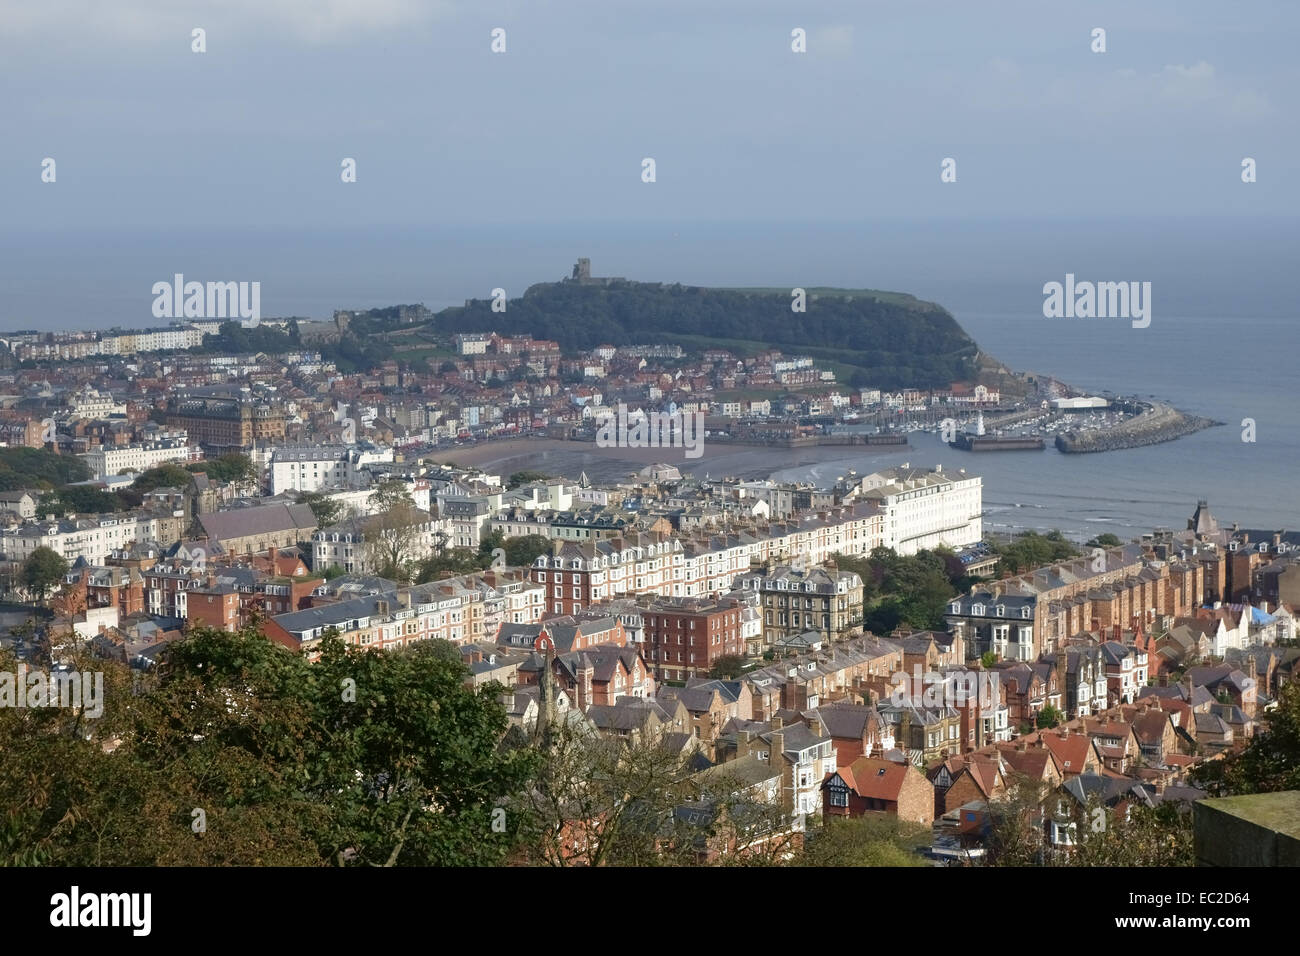 Overlooking Scarborough town from Oliver's Mount with the bay and Scarough Castle beyound on a fine autumn day - Stock Image